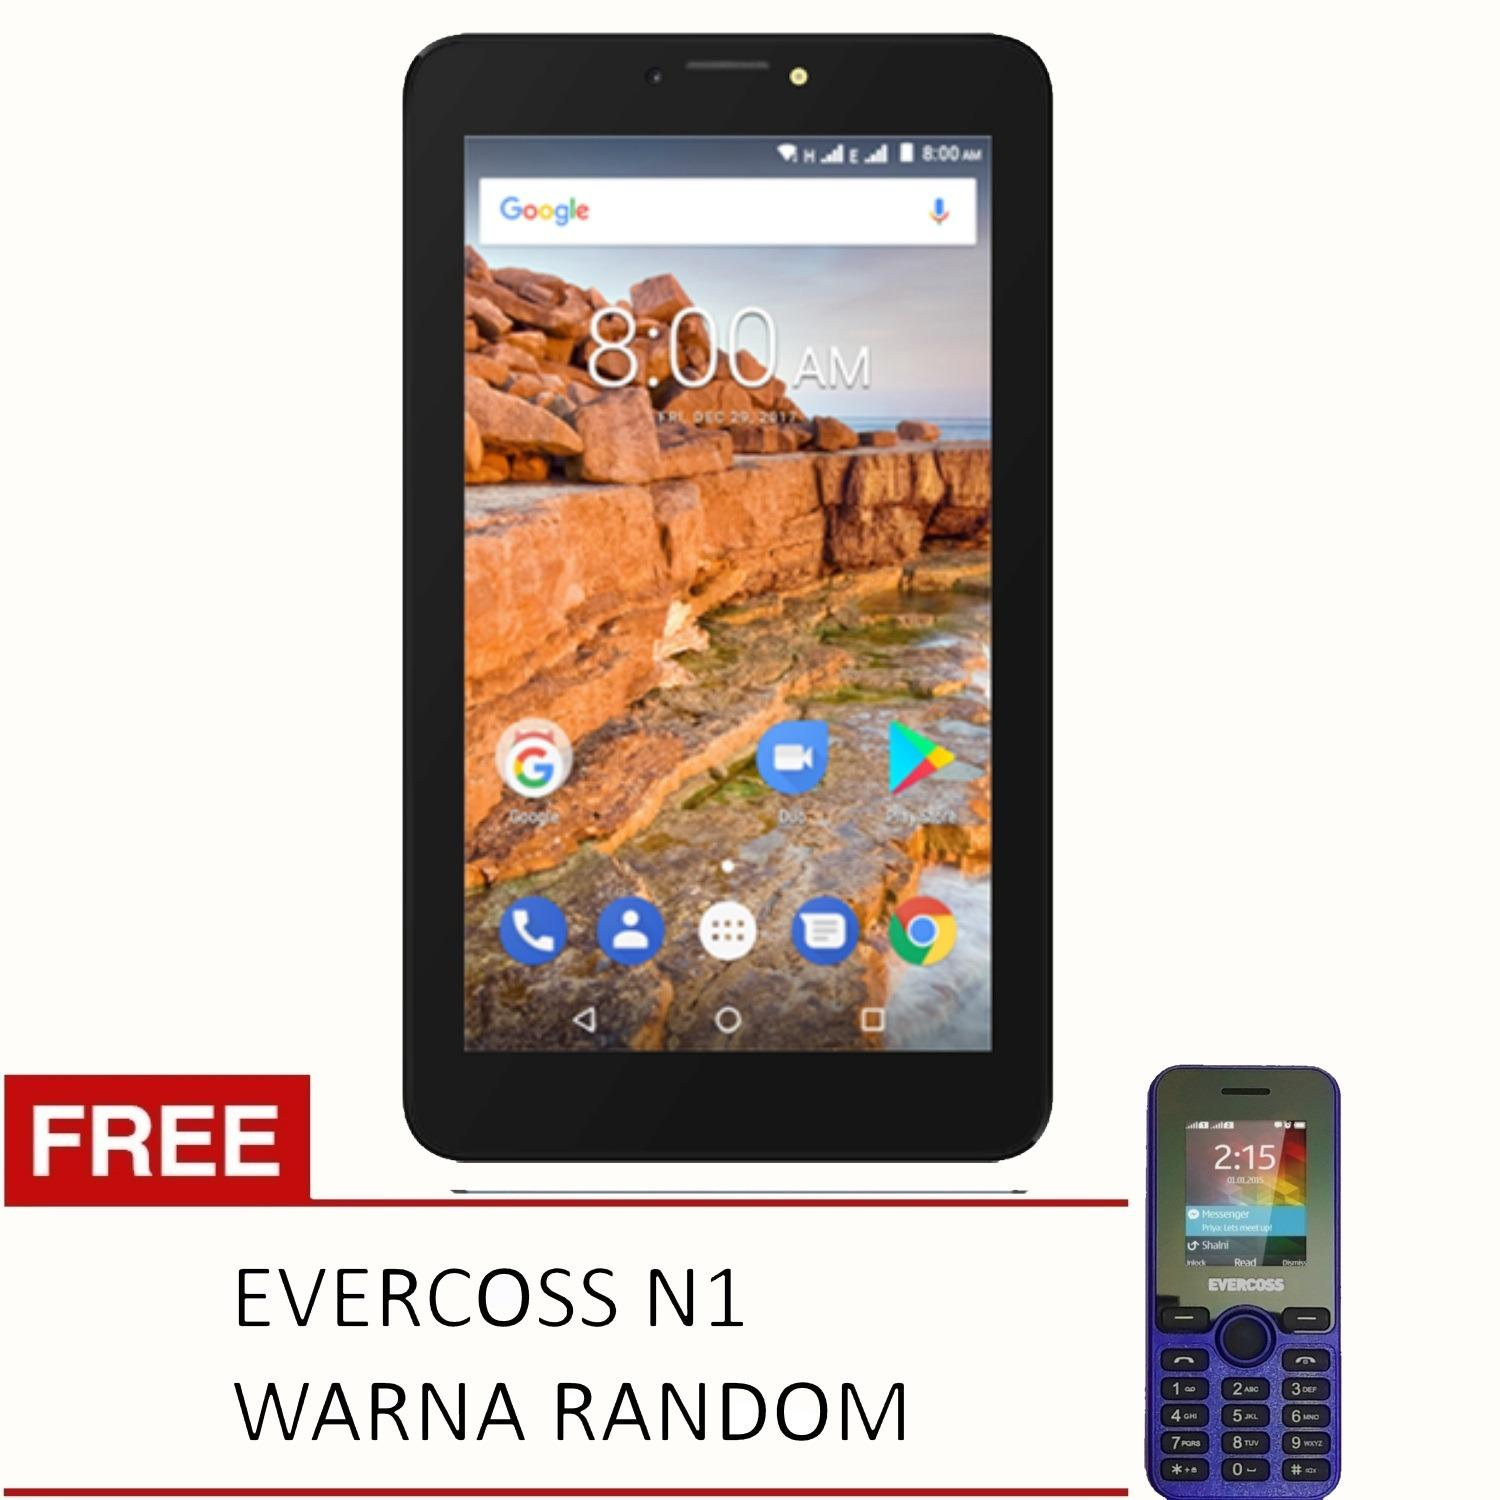 Evercoss Jump Tab S3 At7h 4gb Putih Models And Prices Indonesia Source · Evercoss R70 7